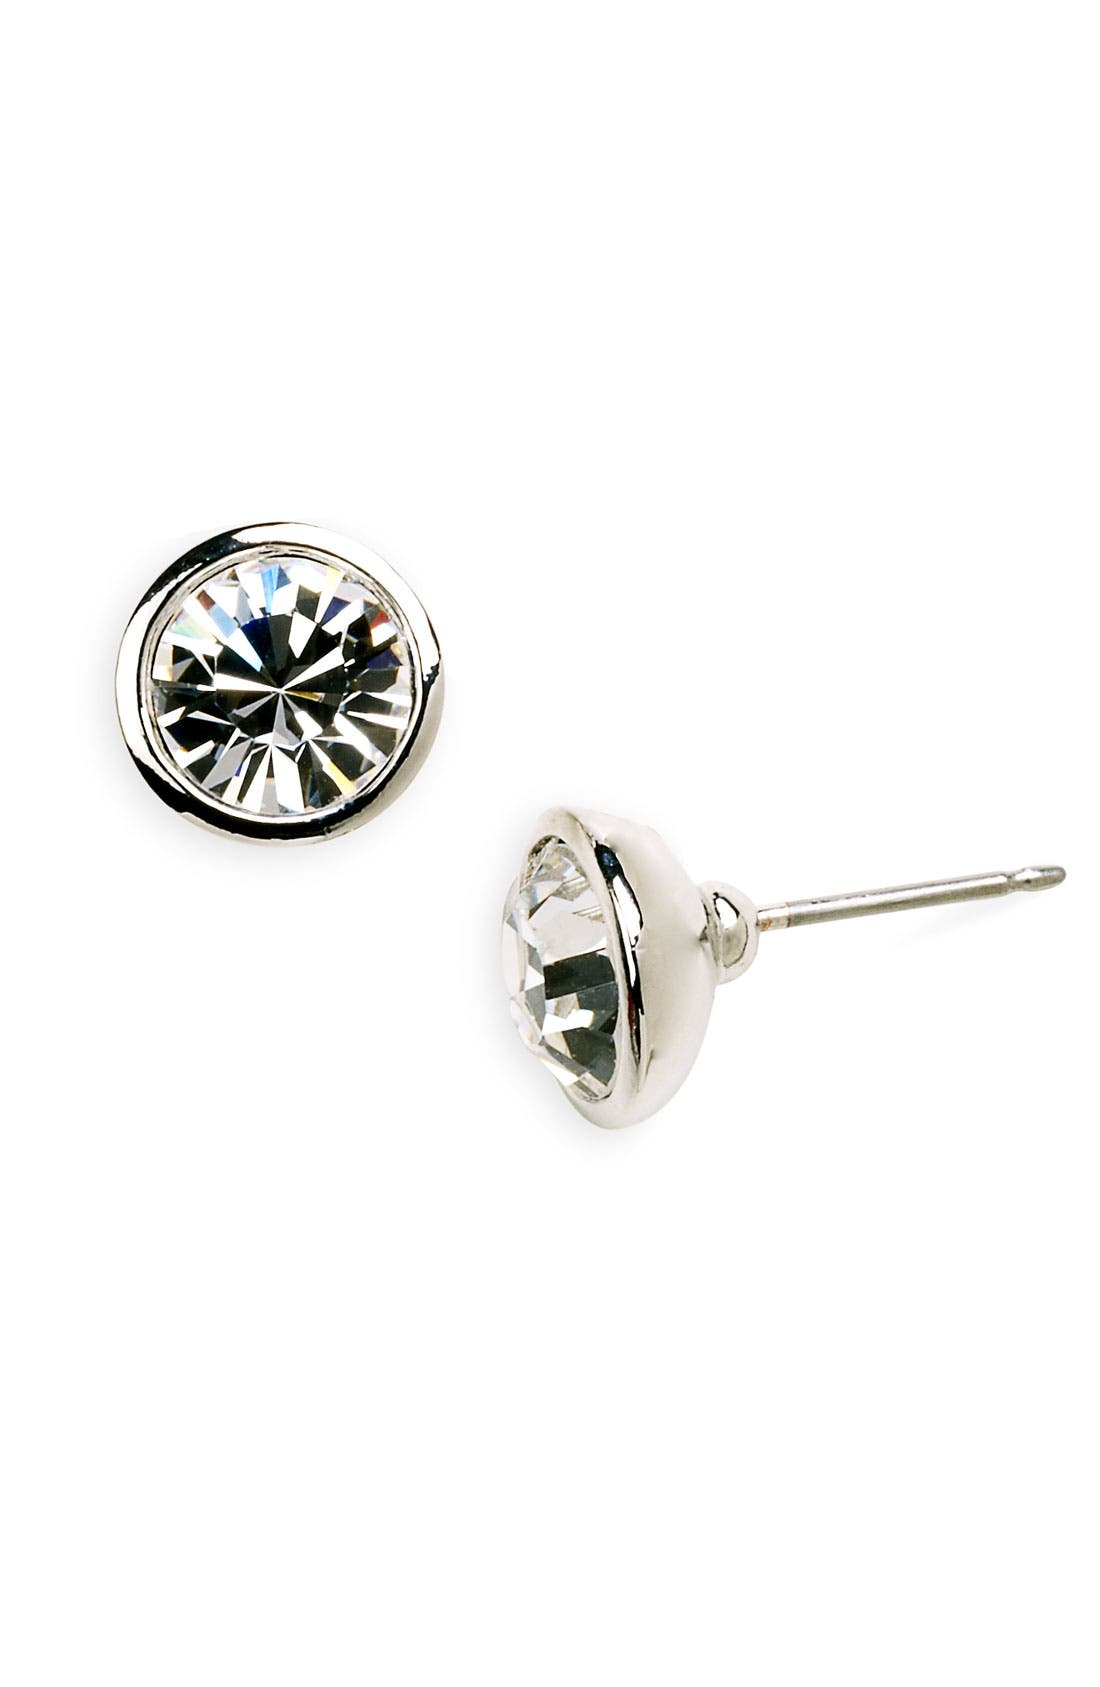 Alternate Image 1 Selected - Givenchy Crystal Stud Earrings (Nordstrom Exclusive)